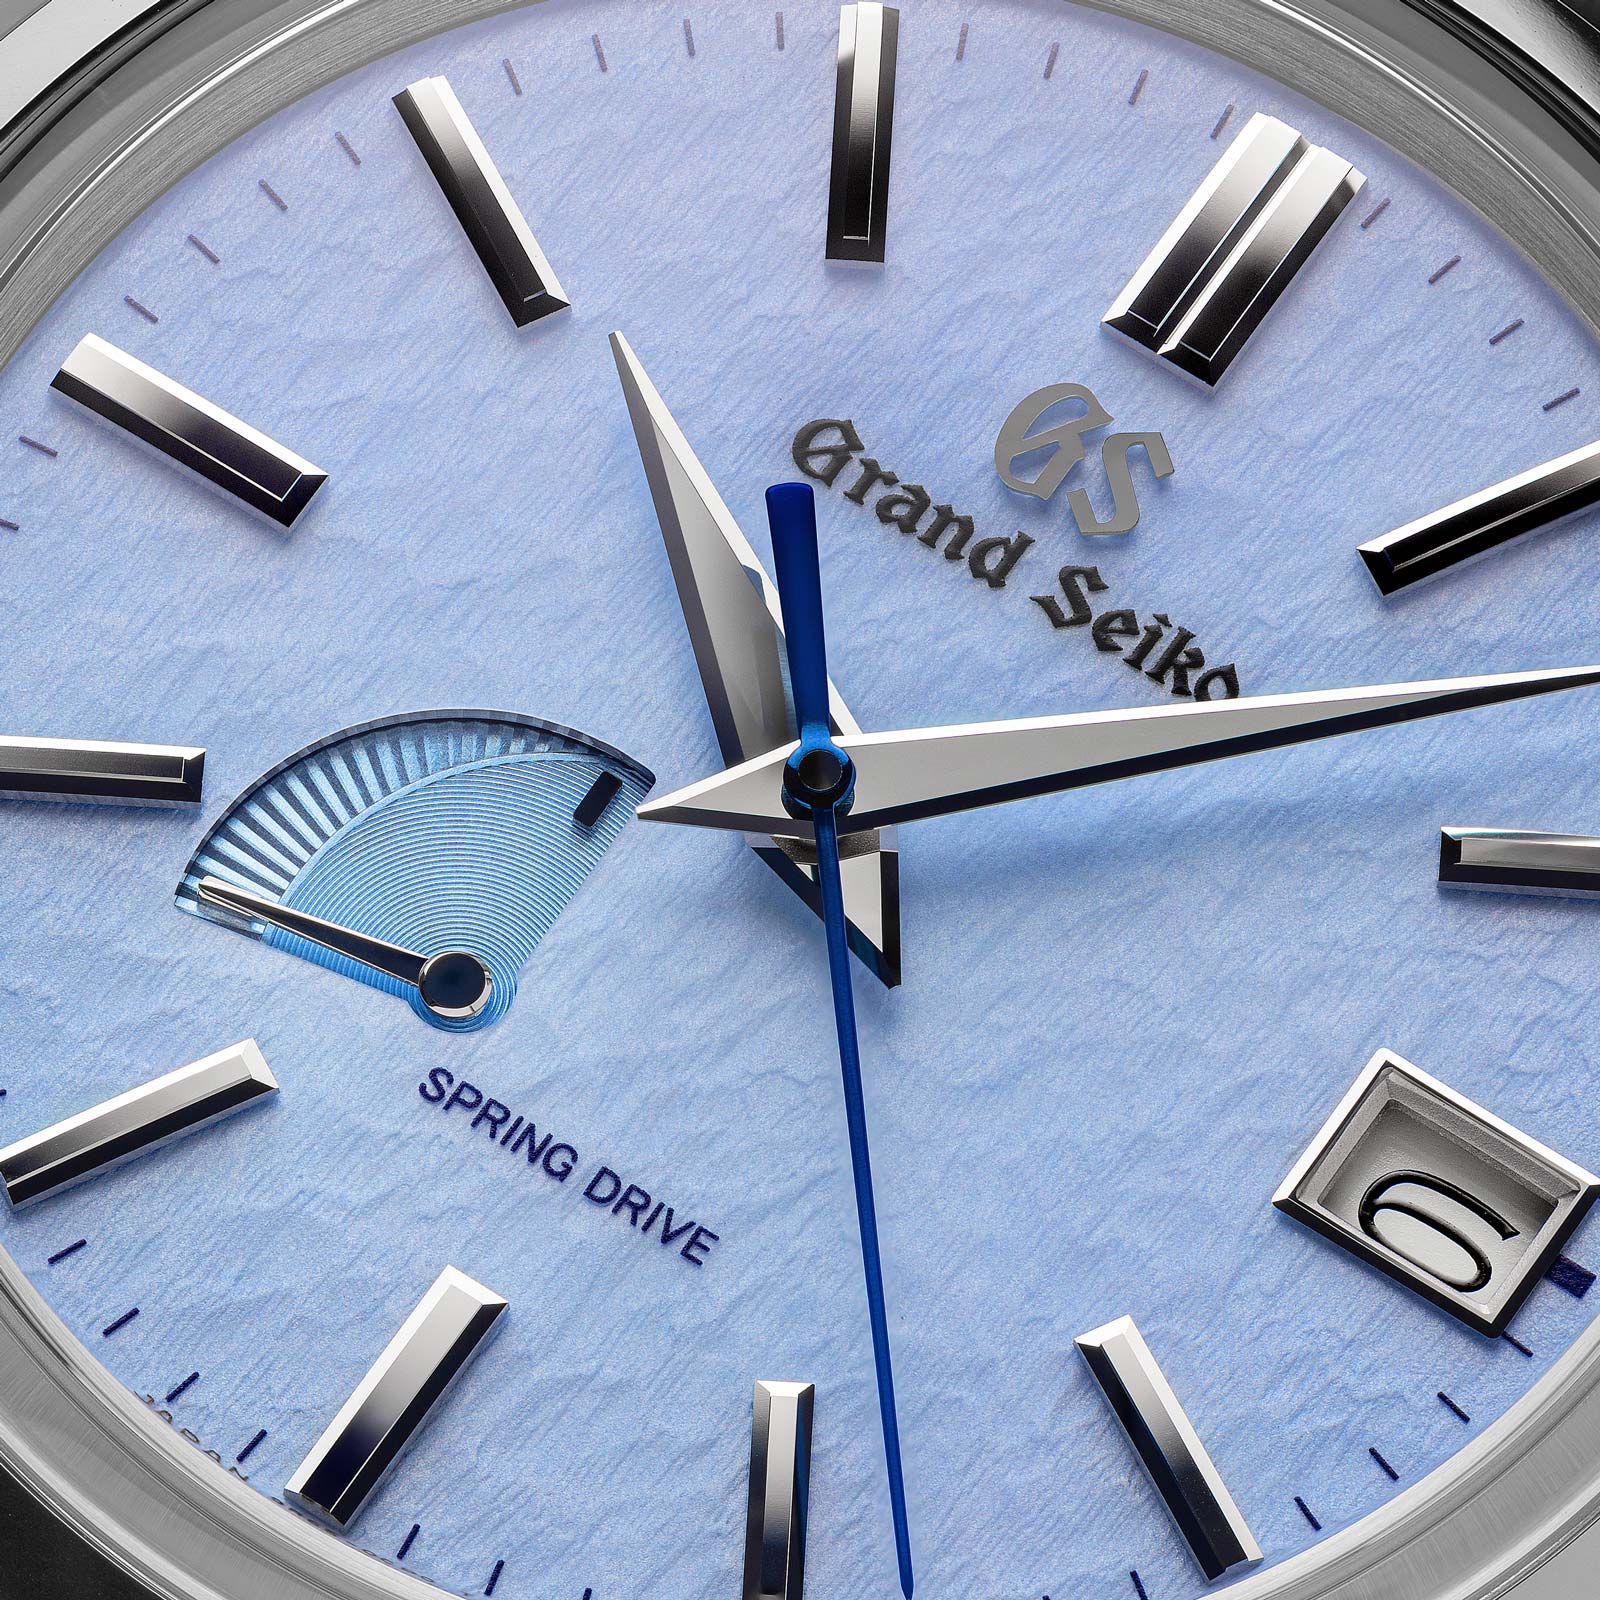 Grand Seiko SBGA407 watch with blue snowflake dial and Spring Drive 9R65 movement.